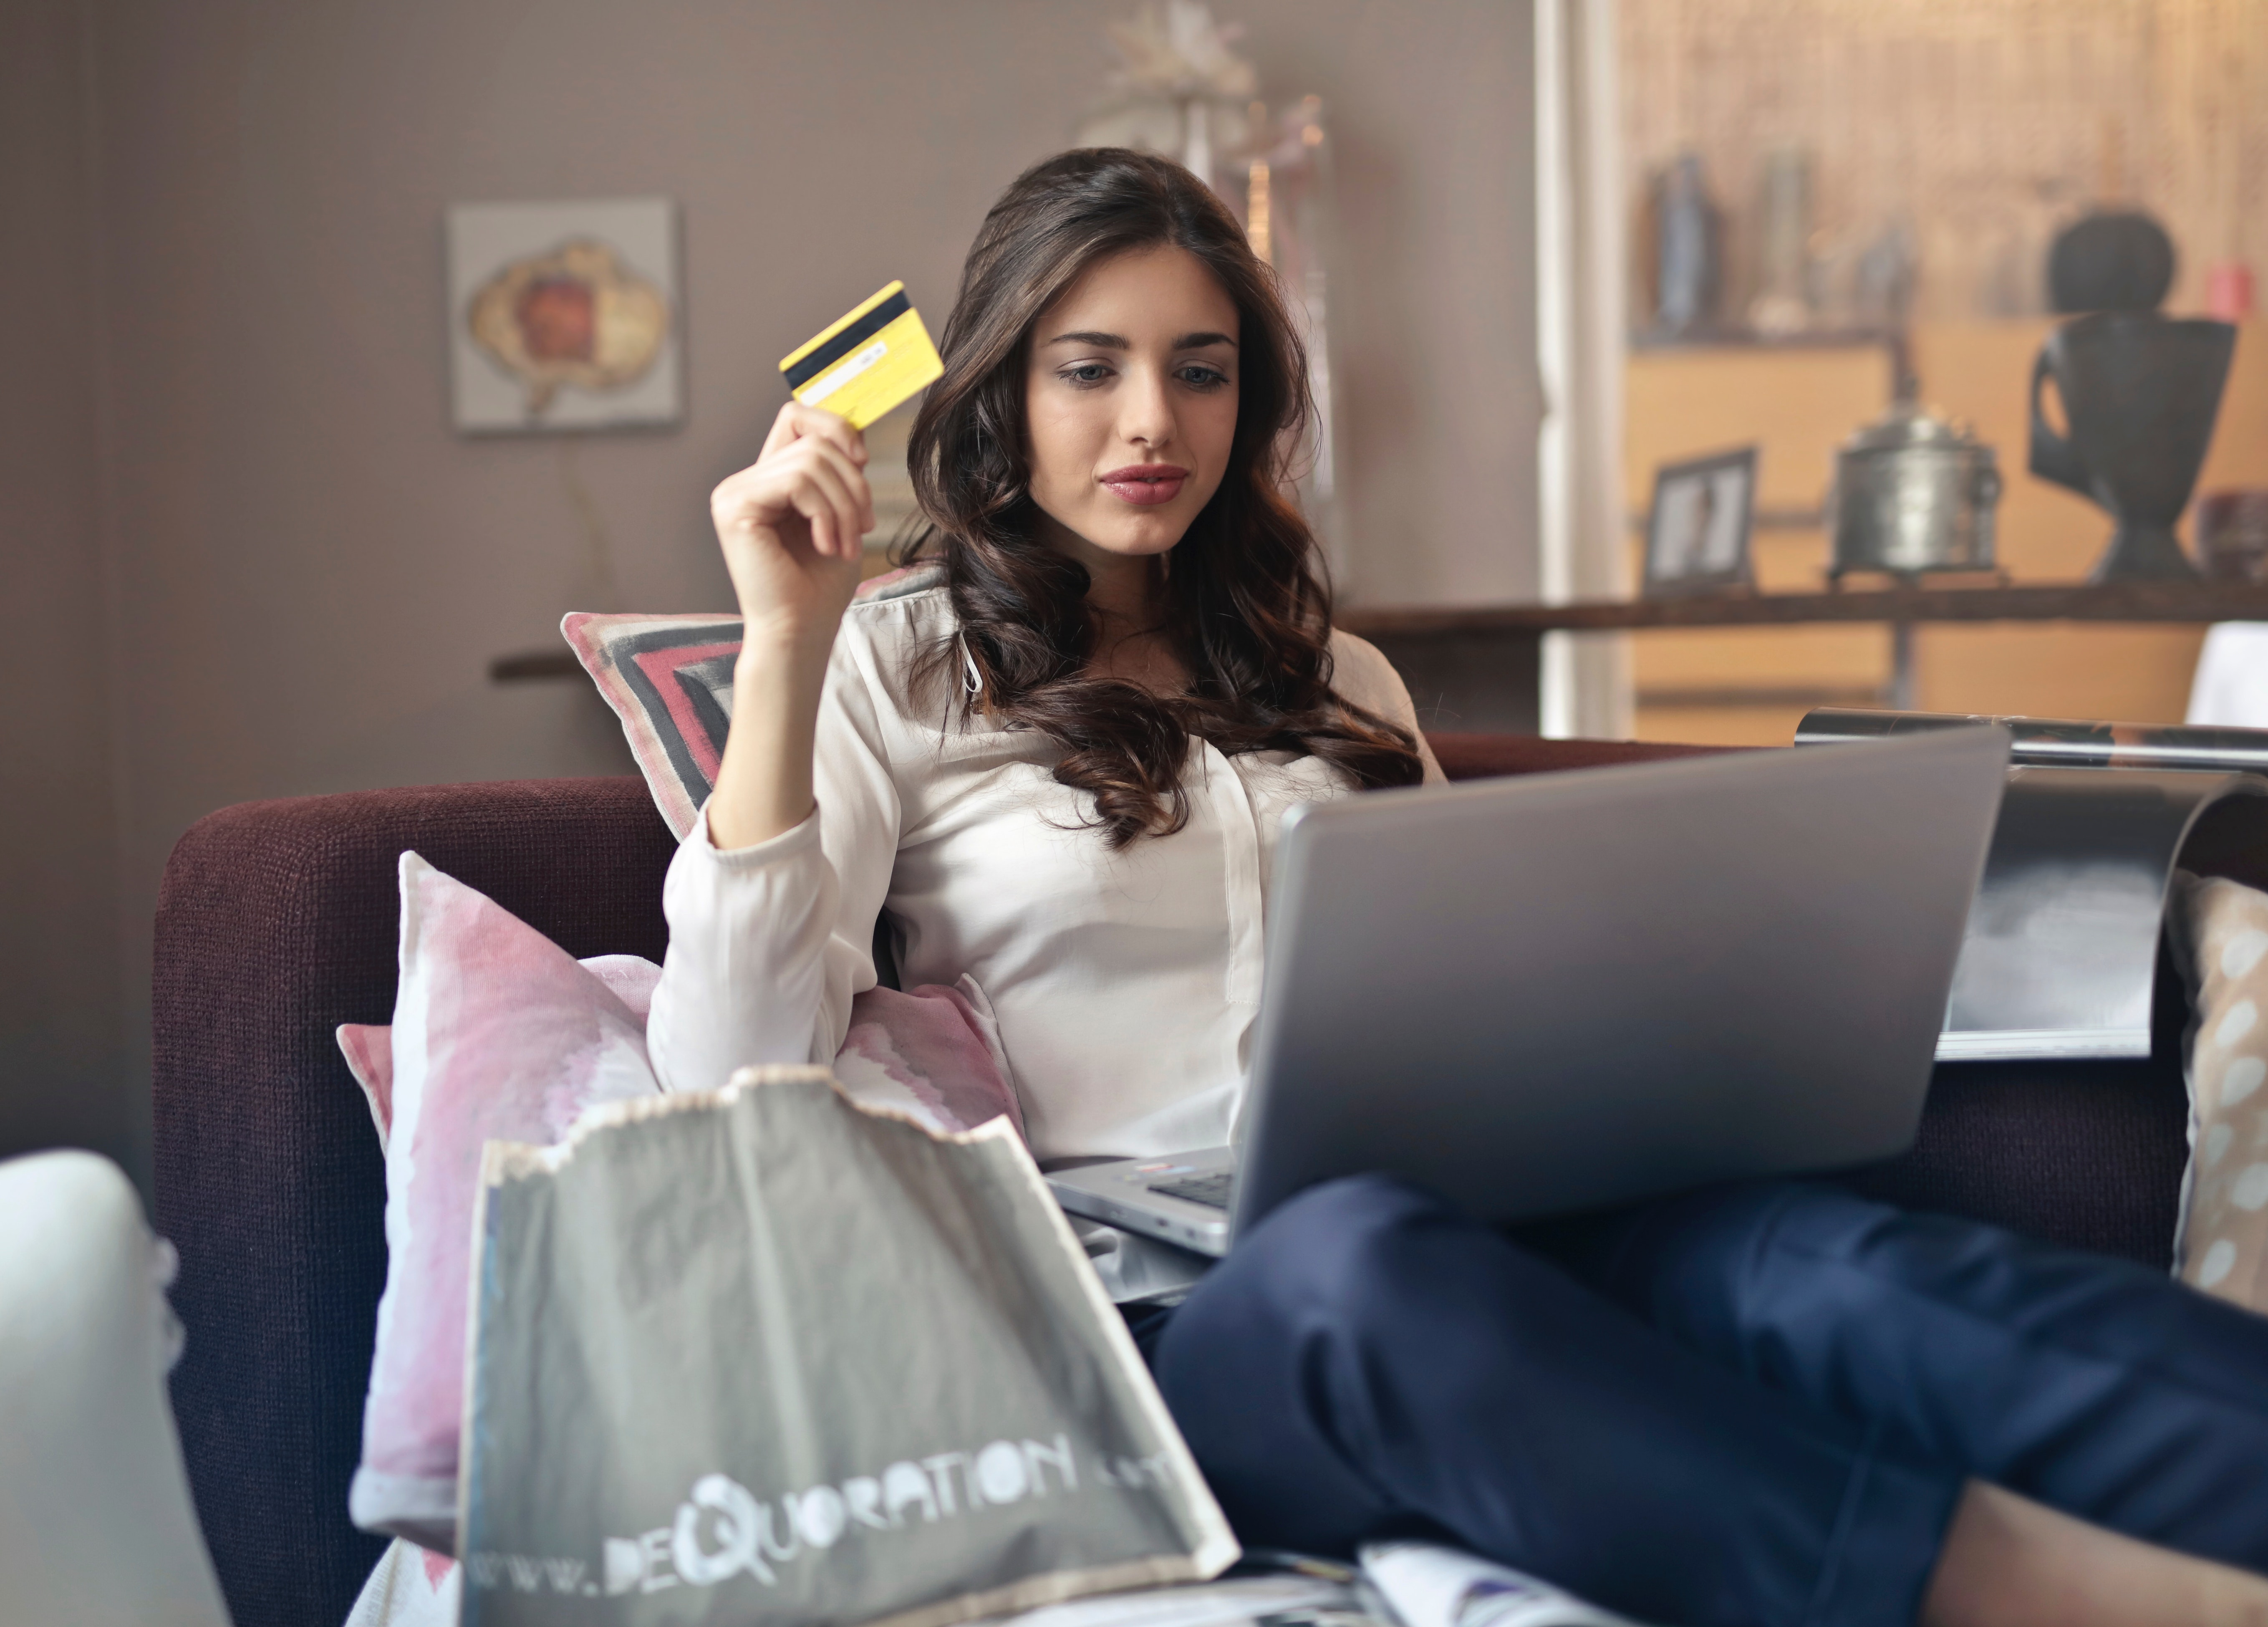 How to Avoid Overpaying While Shopping Online